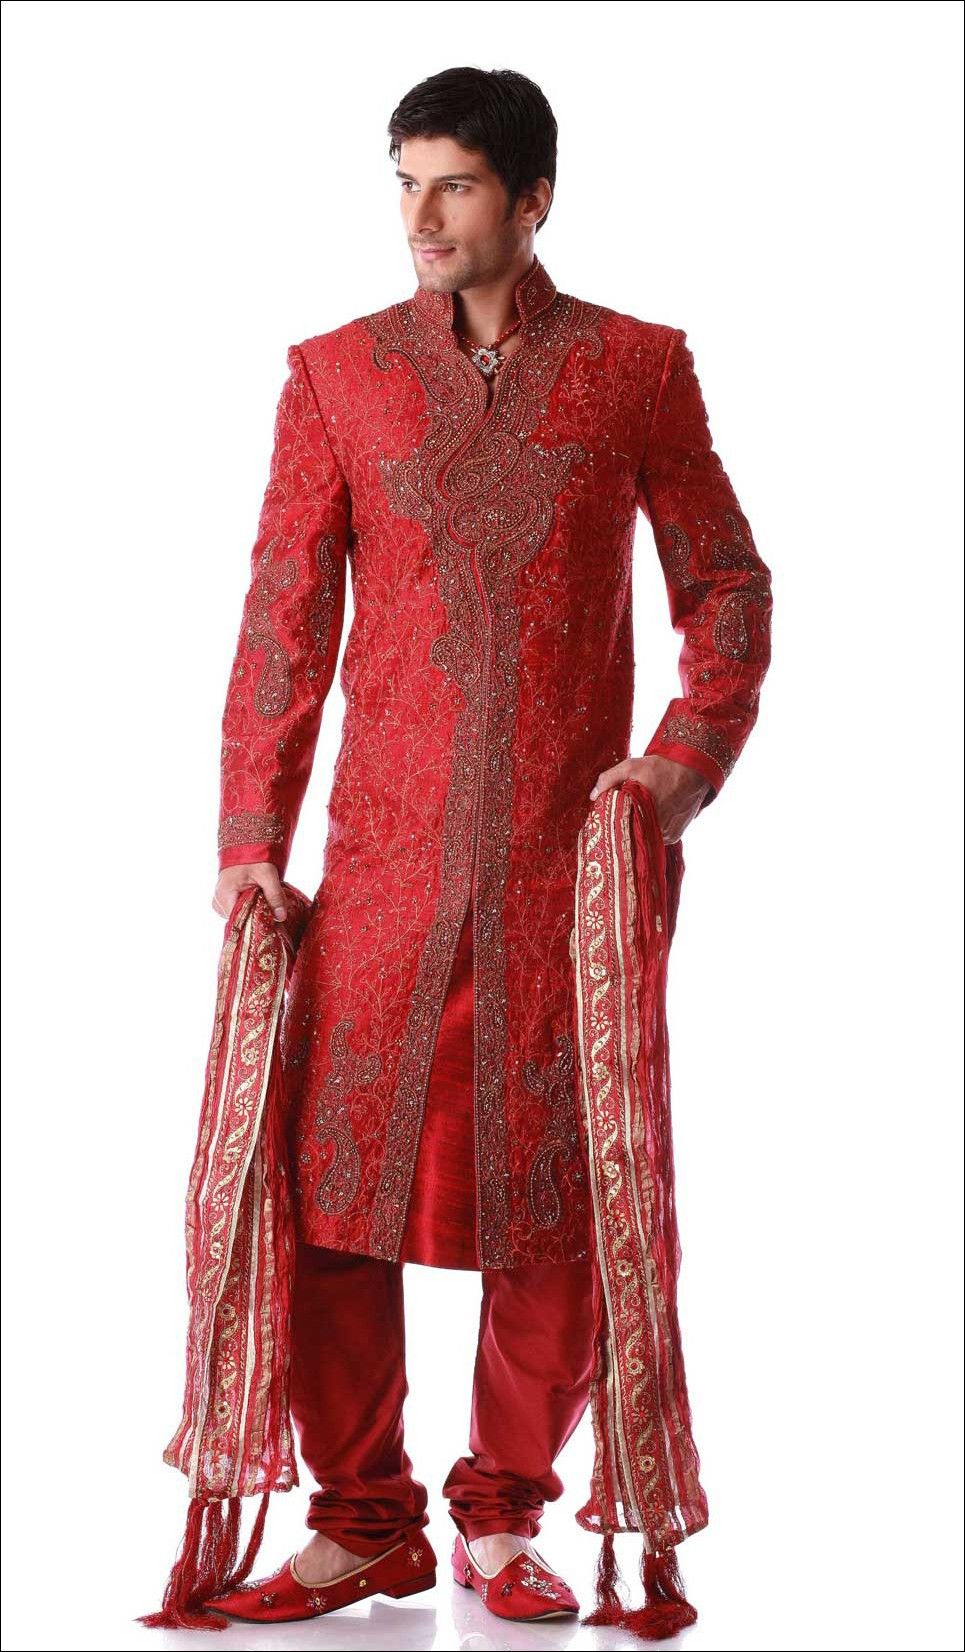 Stylish wedding sherwanis for men red ღ he u ღ she ud ღ love